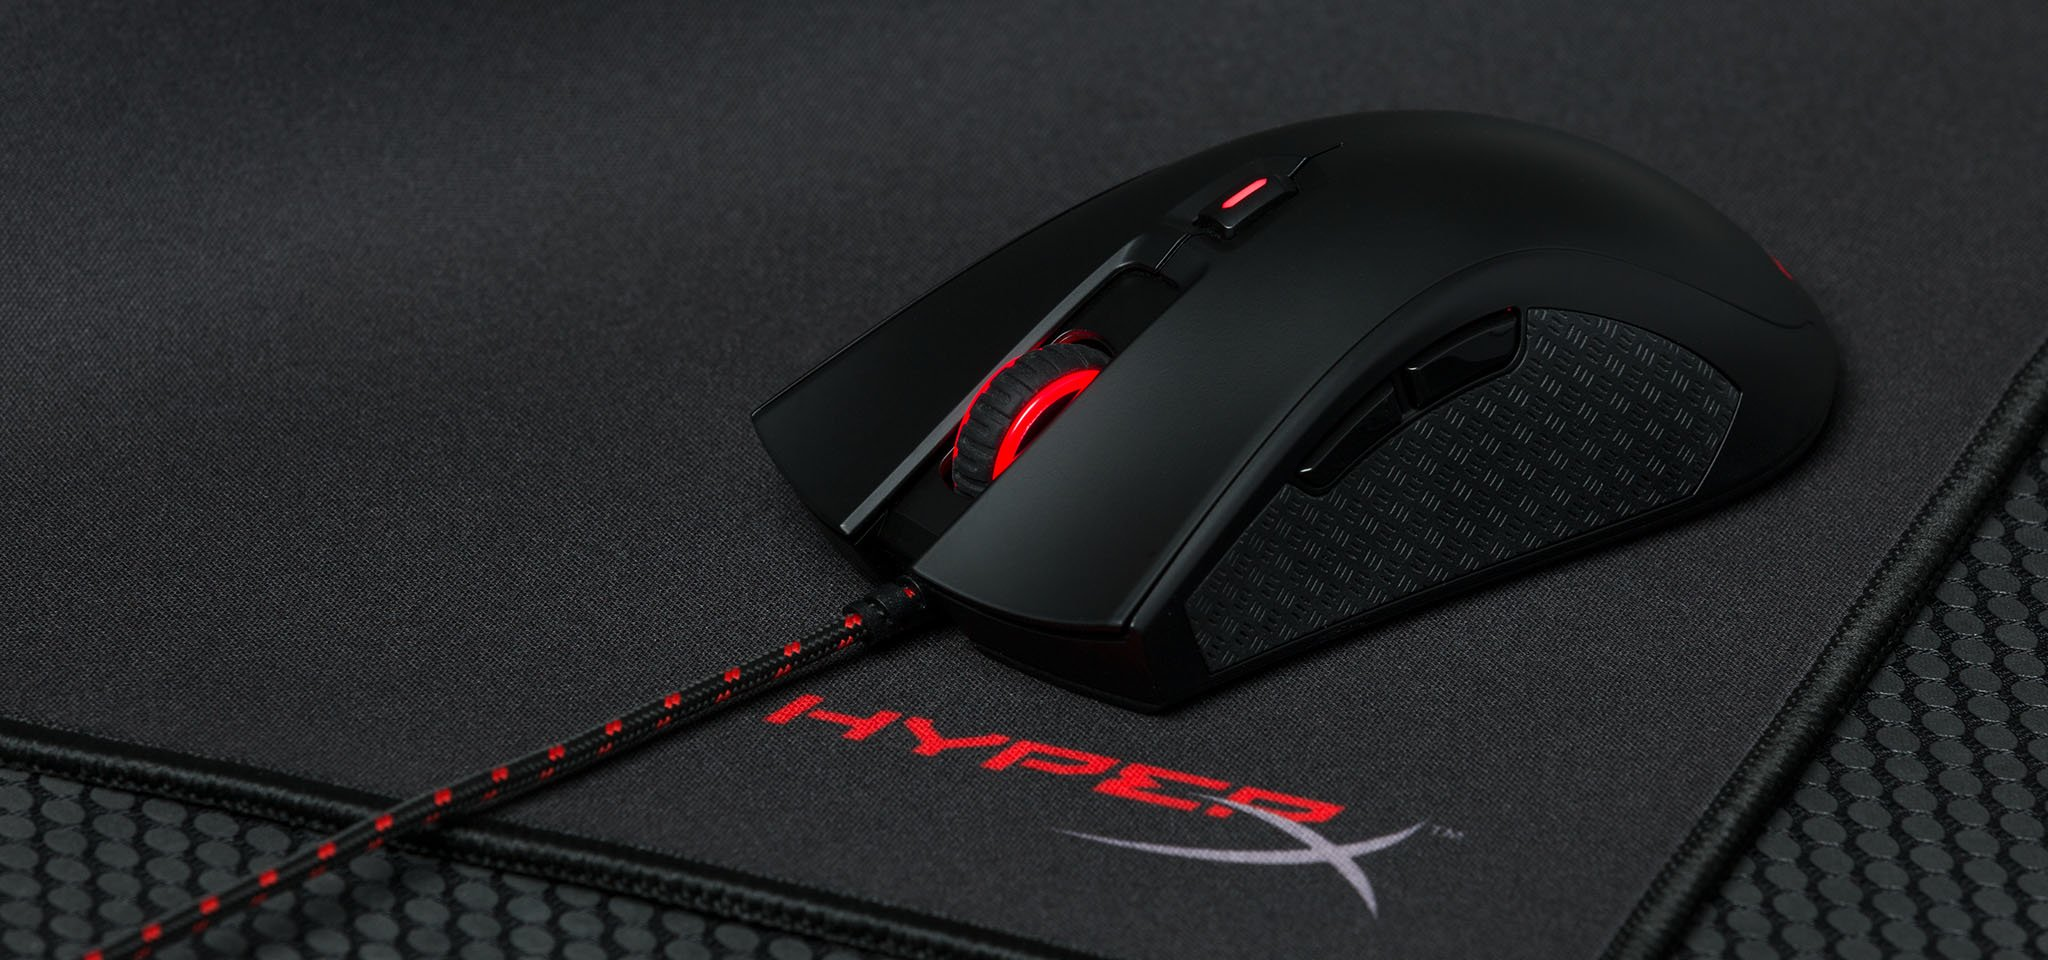 Save on tech like the HyperX Pulsefire gaming mouse on Amazon as part of their Cyber Monday 2019 sale.